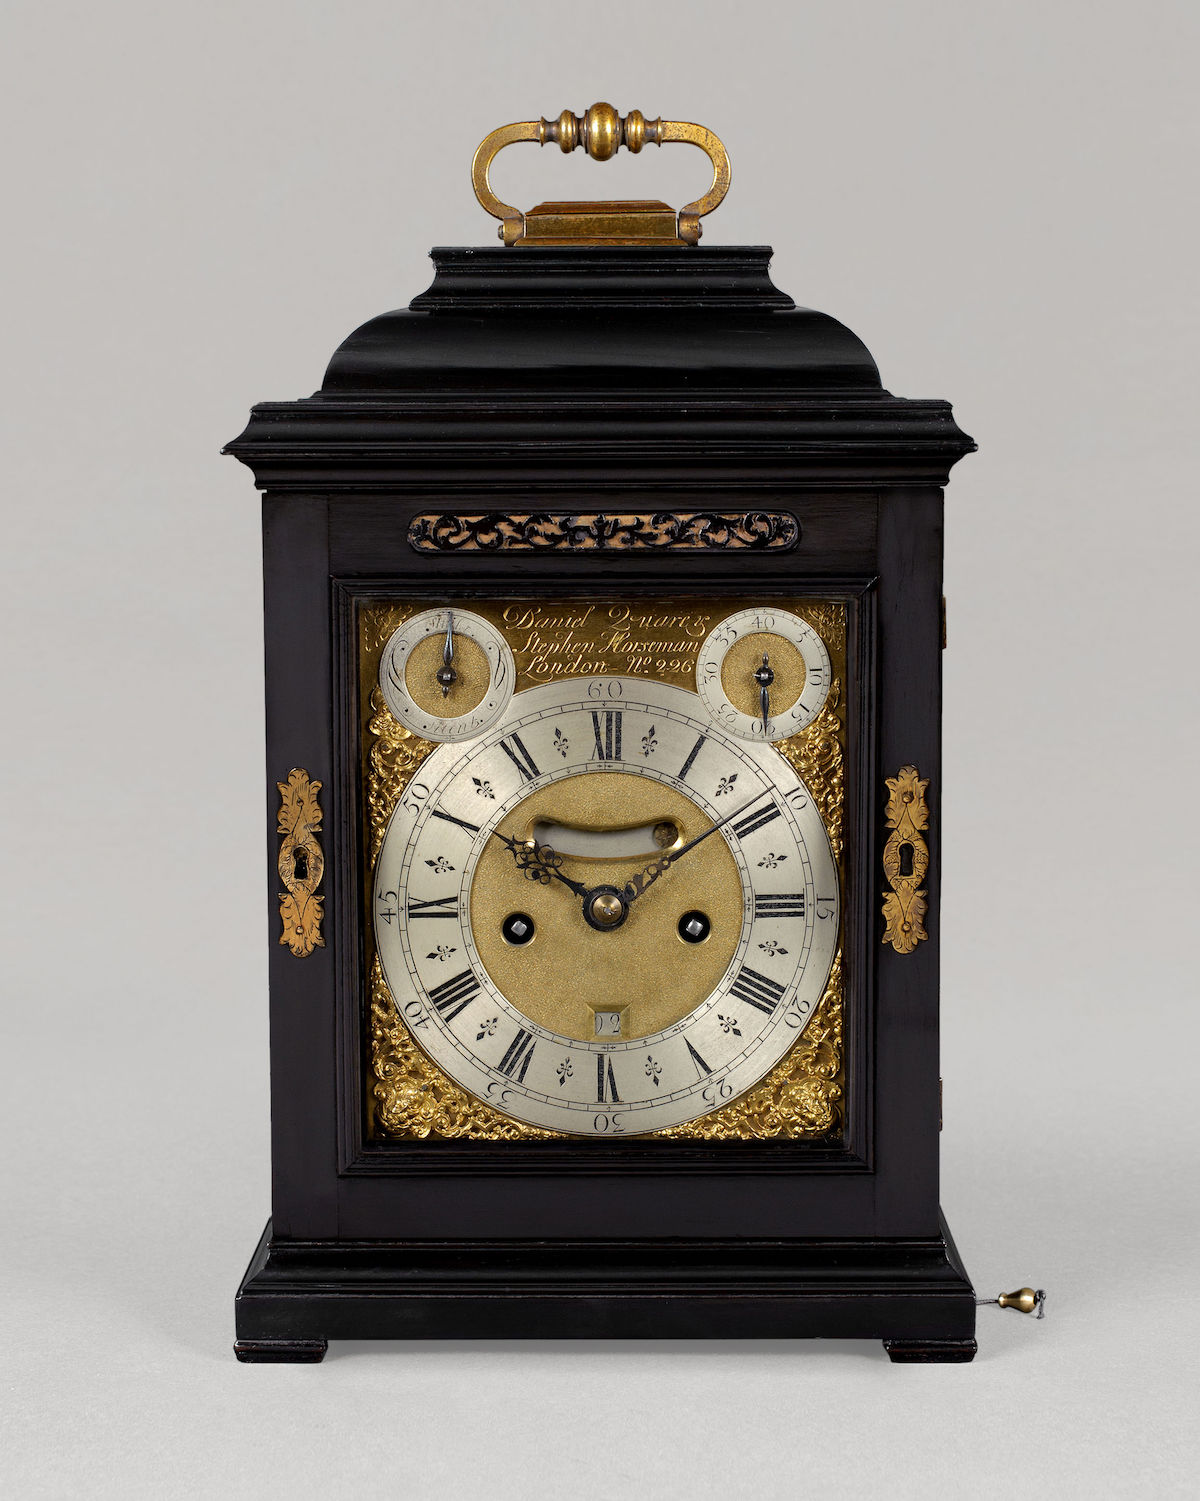 DANIEL QUARE & STEPHEN HORSEMAN, N° 226. A GEORGE I PERIOD QUARTER-REPEATING SPRING TABLE CLOCK BY ONE OF THE MOST CELEBRATED PARTNERSHIPS OF THE EARLY EIGHTEENTH CENTURY.